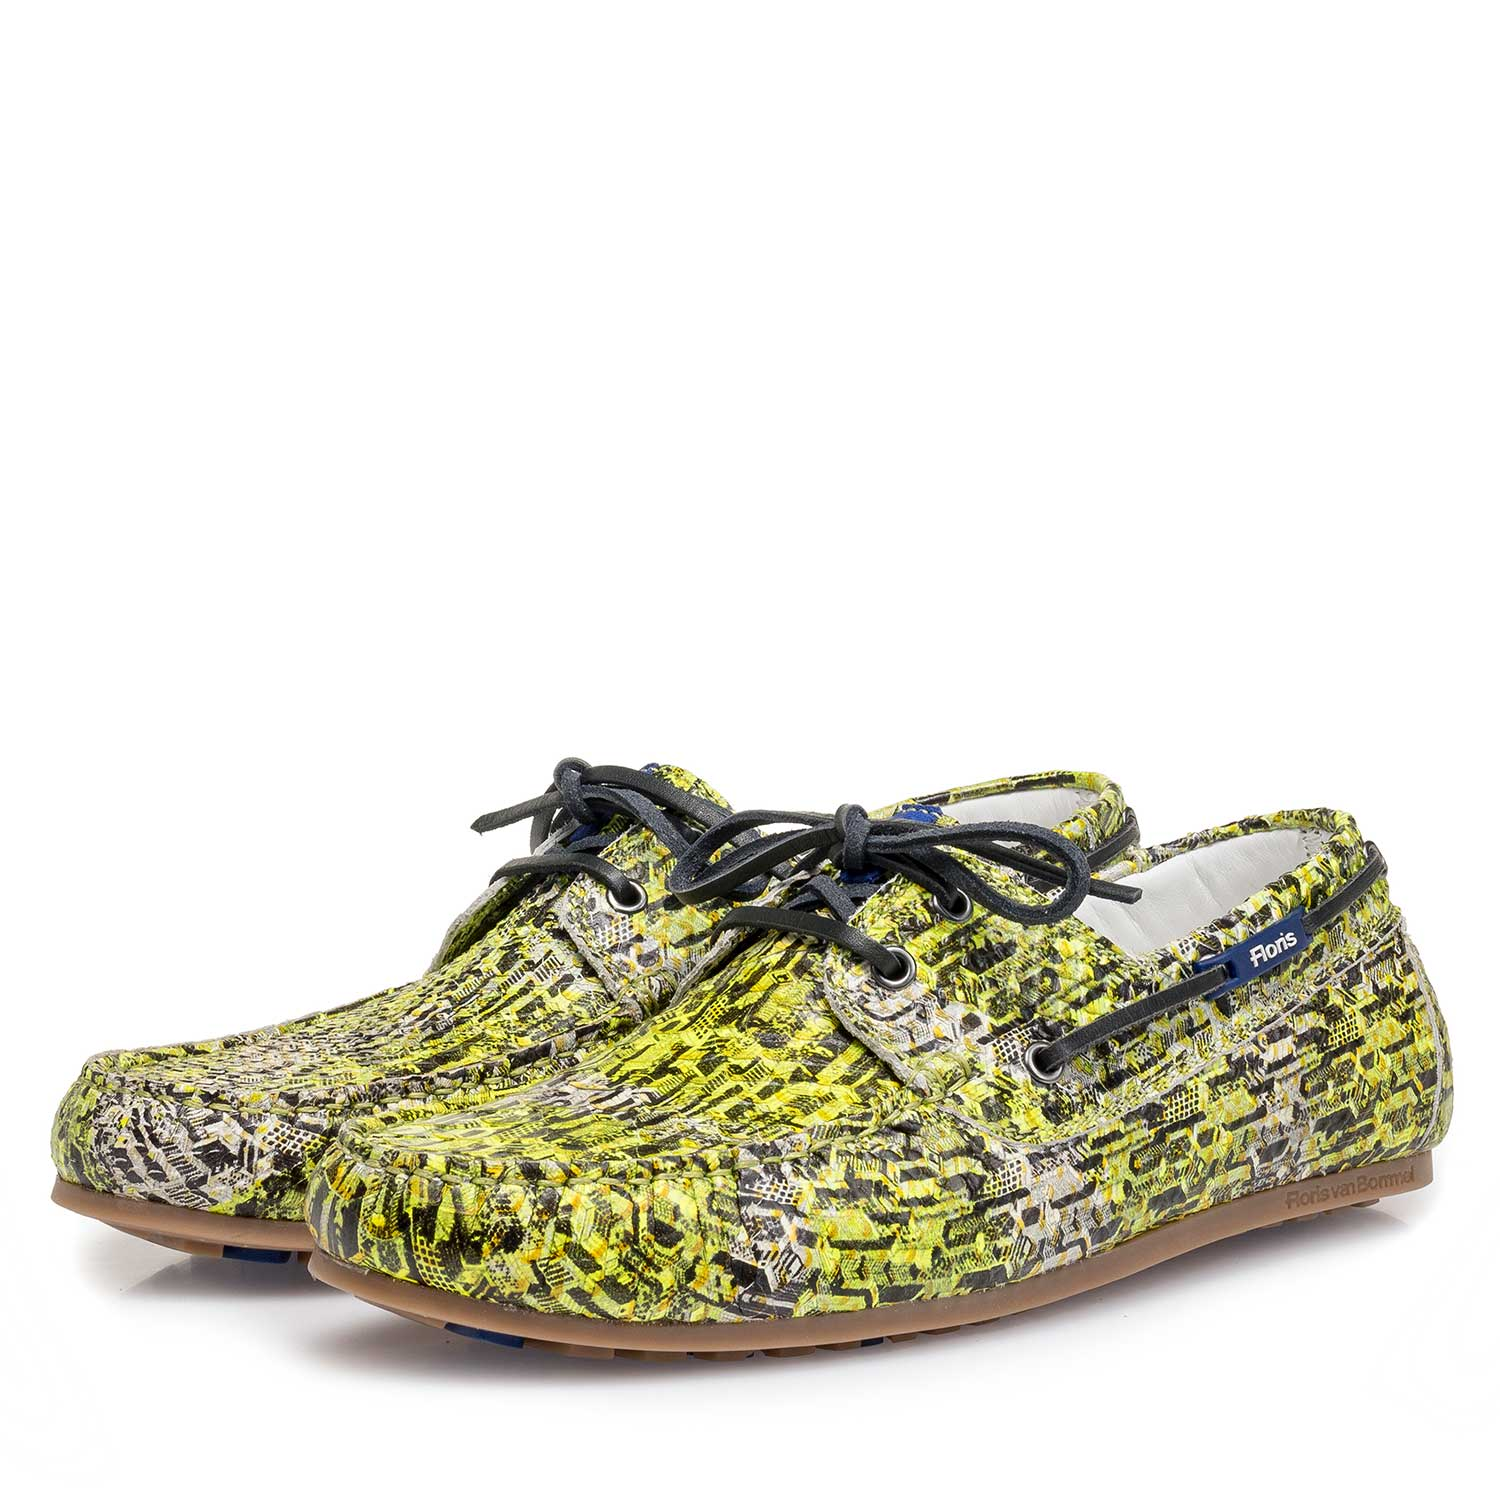 15034/01 - Yellow snake print calf leather sailing shoe